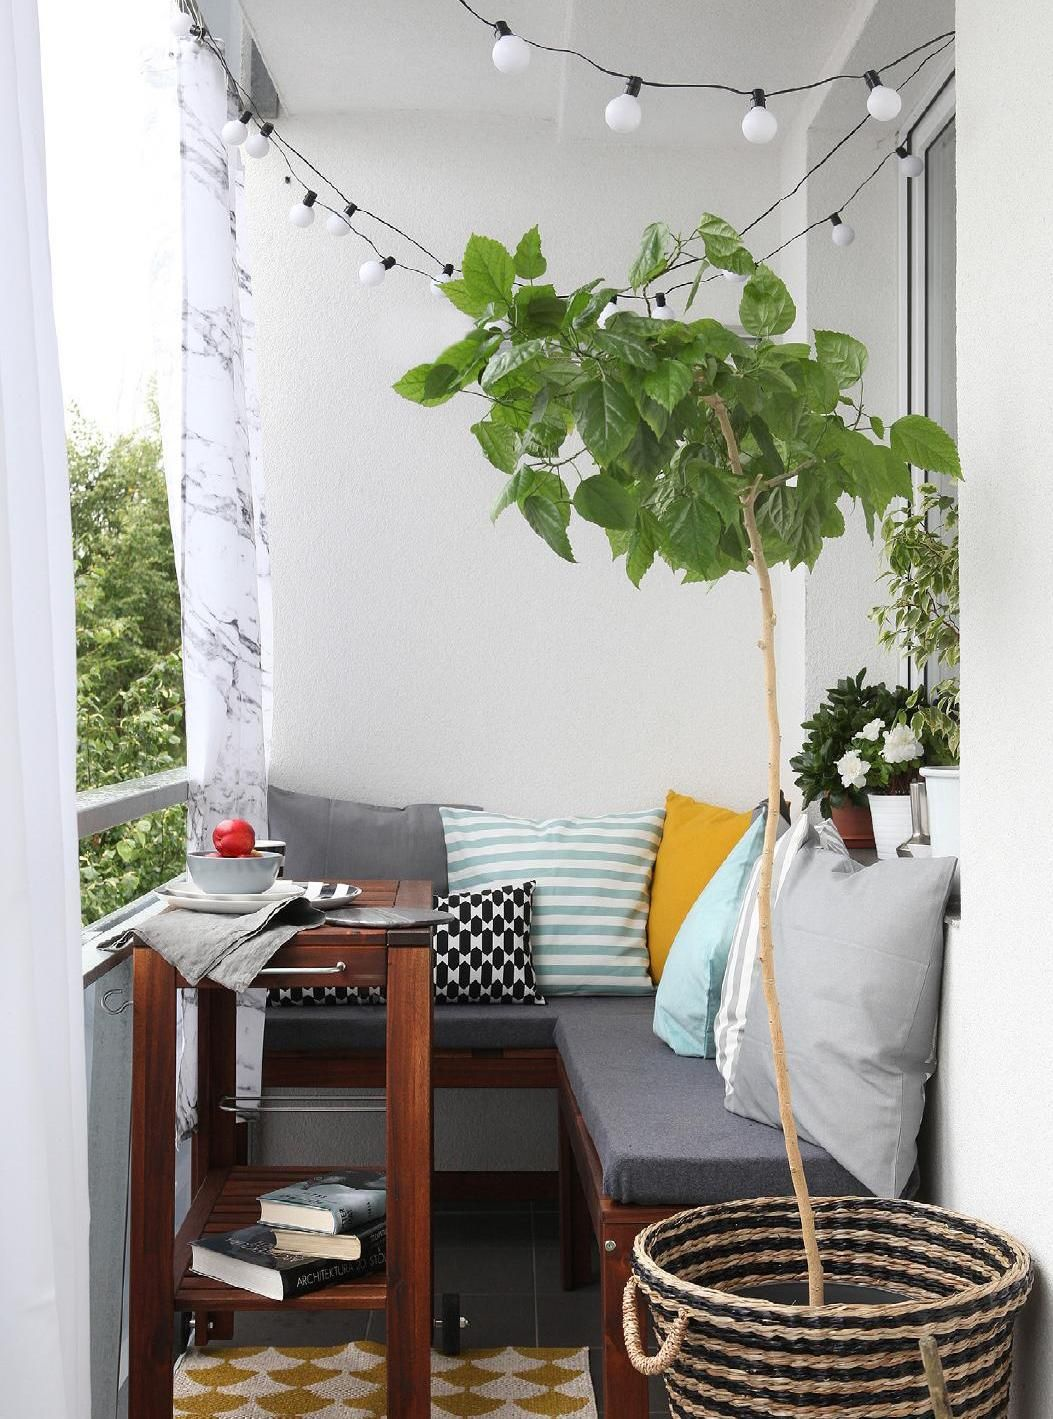 20 Awesome Small Balcony Ideas Glorifying Even The Tiniest of Spaces ...